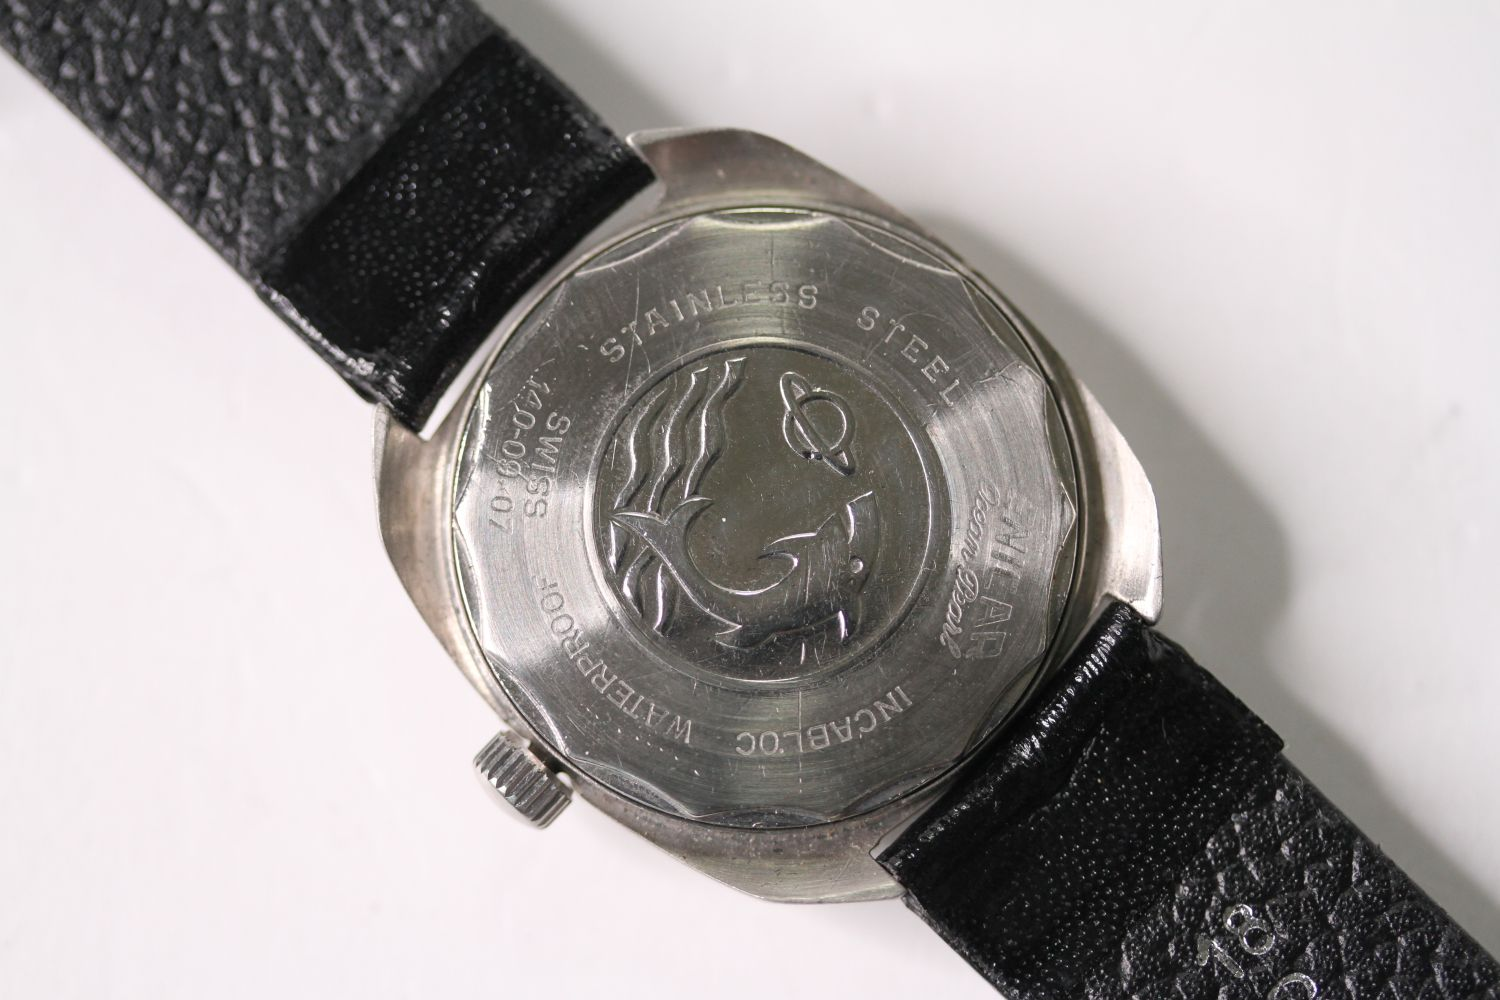 *TO BE SOLD WITHOUT RESERVE* ENICAR STAR JEWELS AUTOMATIC WRISTWATCH, circular cream dial with - Image 2 of 4